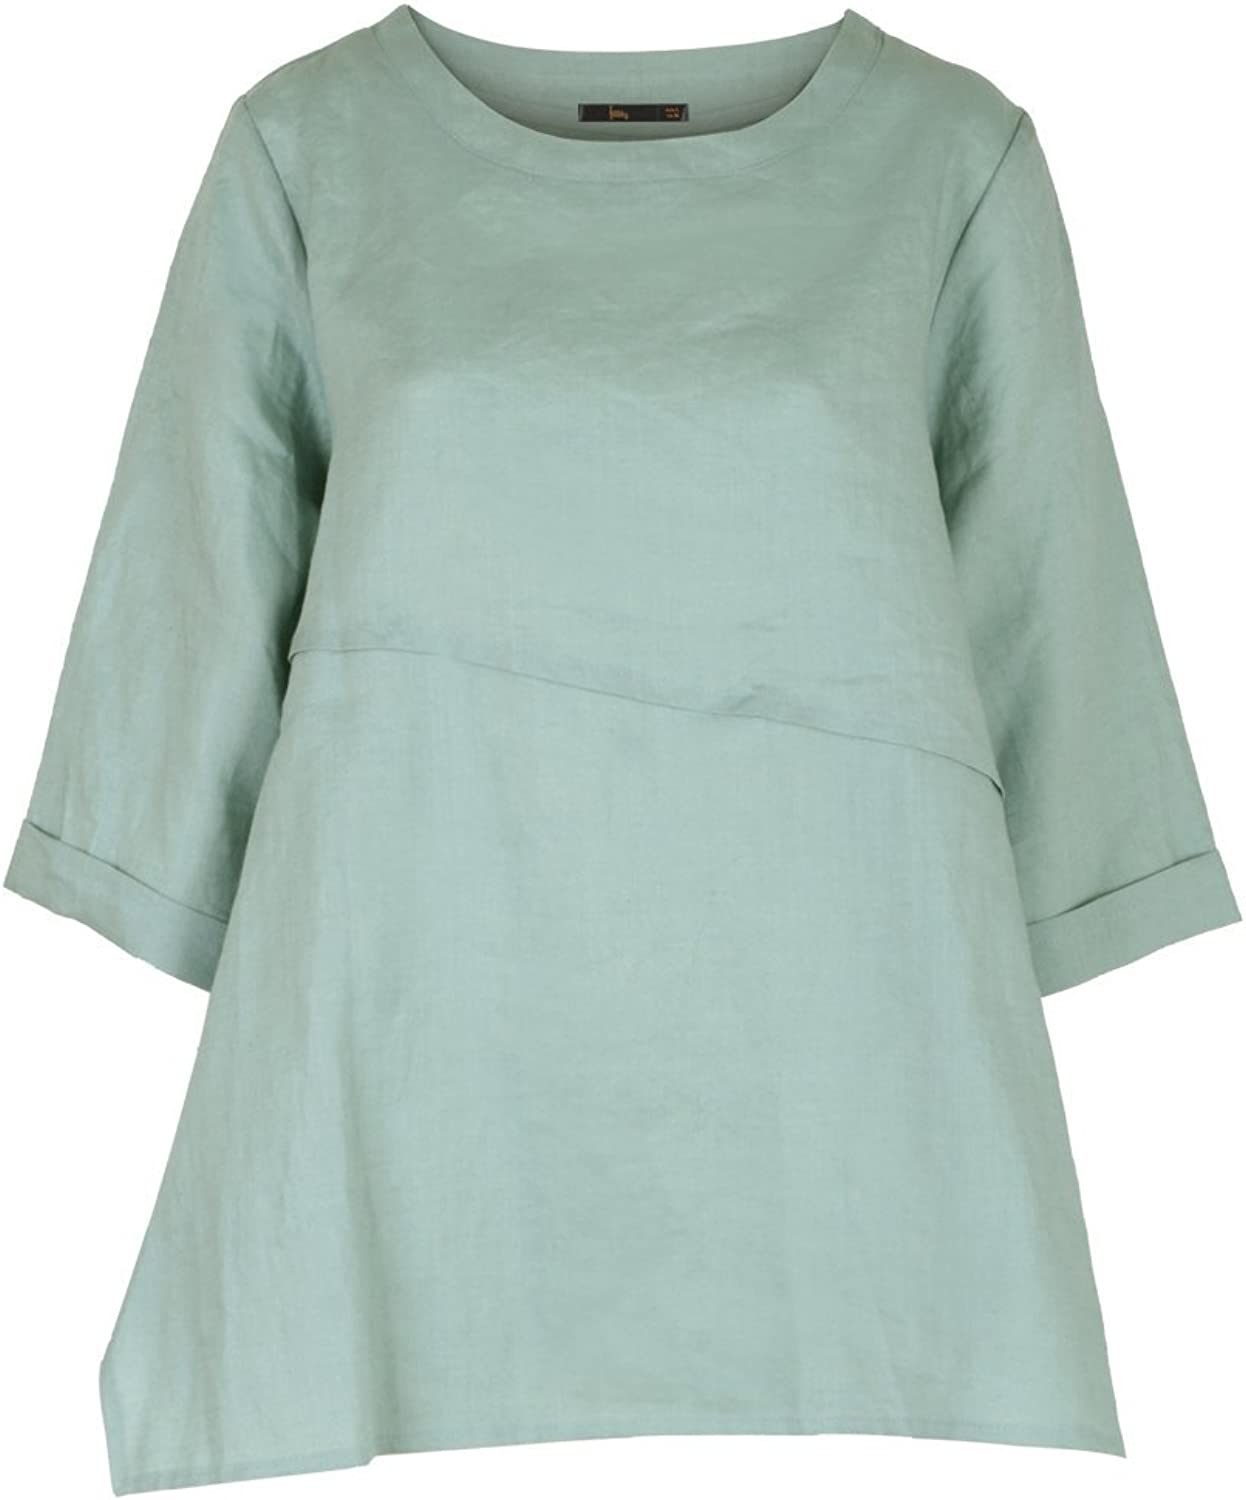 Ililily Side Slit Detail 3 4 Sleeves Linen Long TShirts Loose Fit Summer Tunic